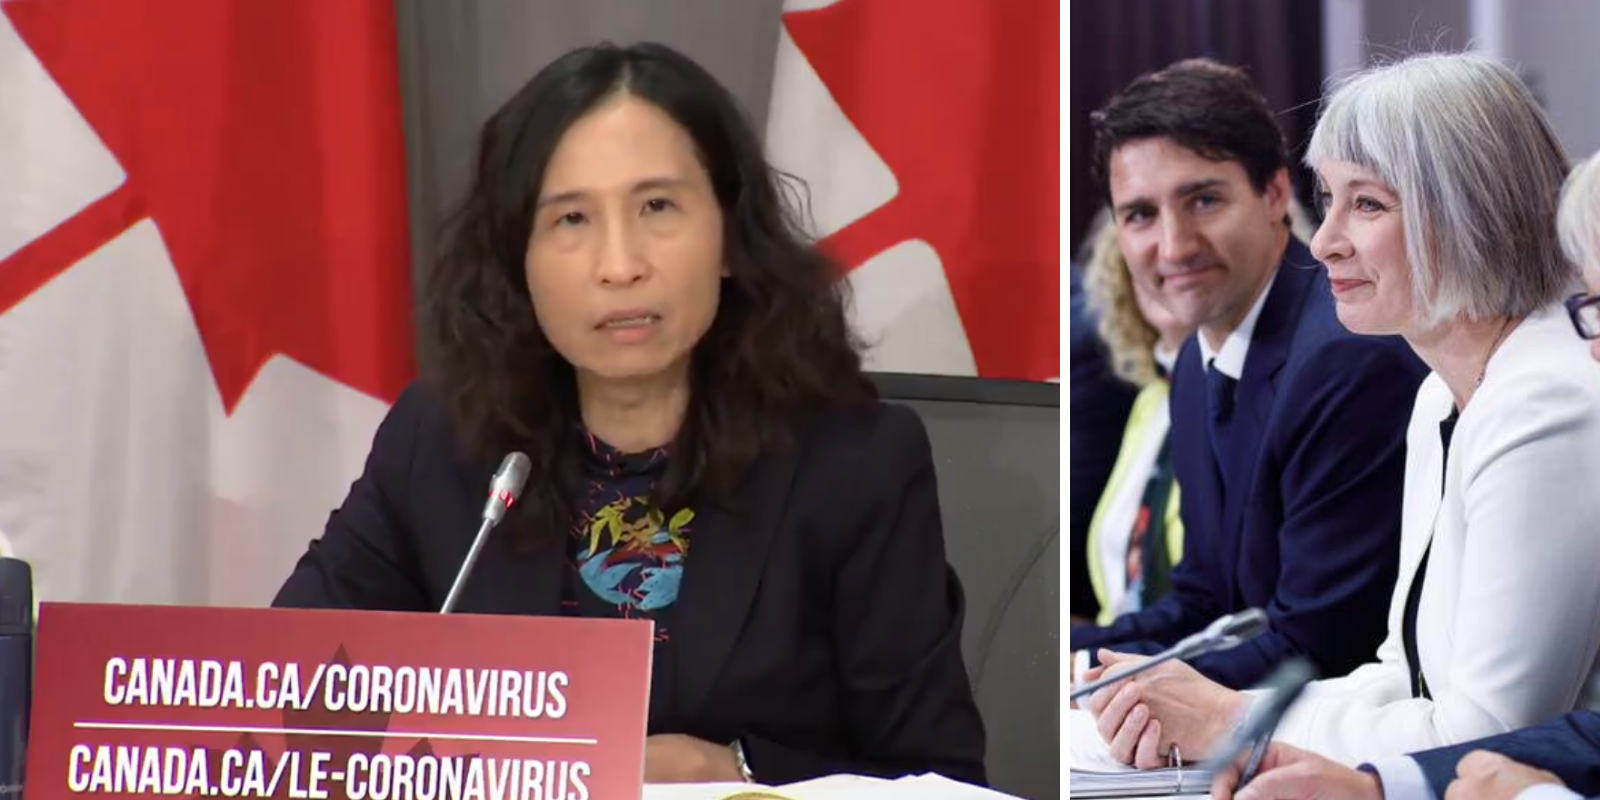 Trudeau Liberals won't rule out decriminalizing cocaine and heroin amid opioid crisis